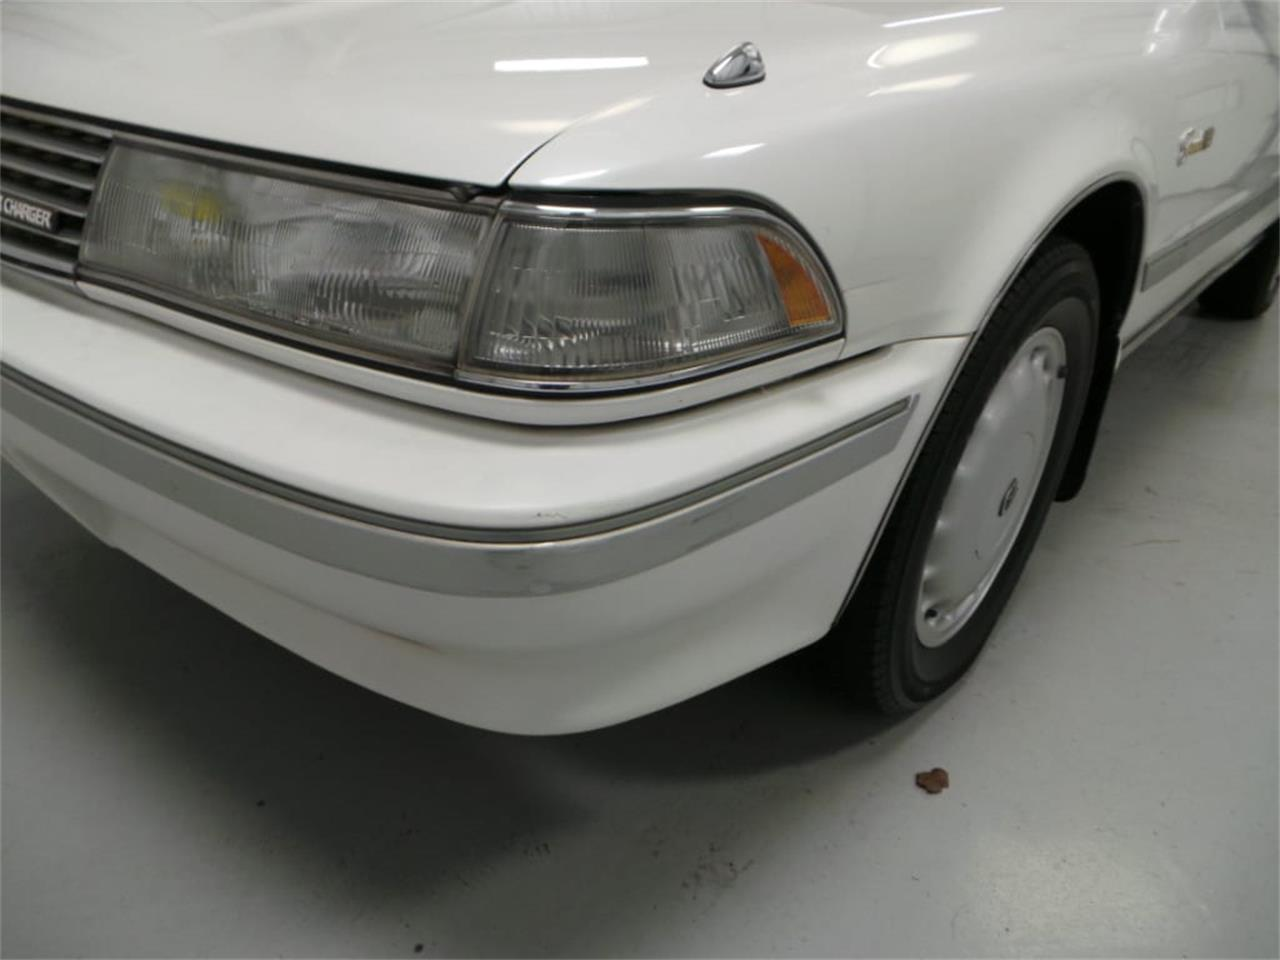 Large Picture of '88 Toyota Corona Mark II - $7,900.00 Offered by Duncan Imports & Classic Cars - JLDS